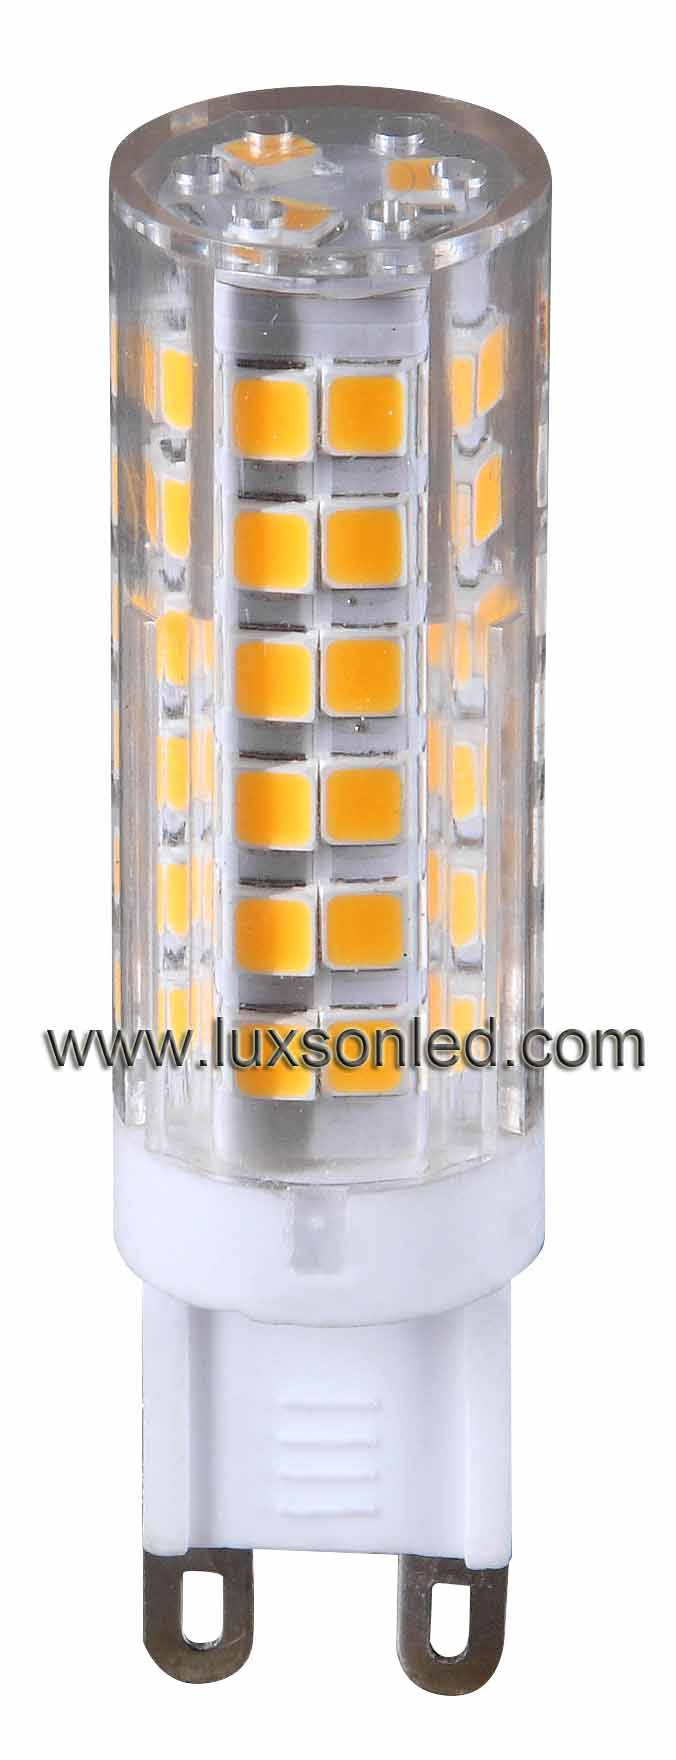 LED Bulb G9 2W 2.5W 4W 6W LED Lamp LED Light Bulb